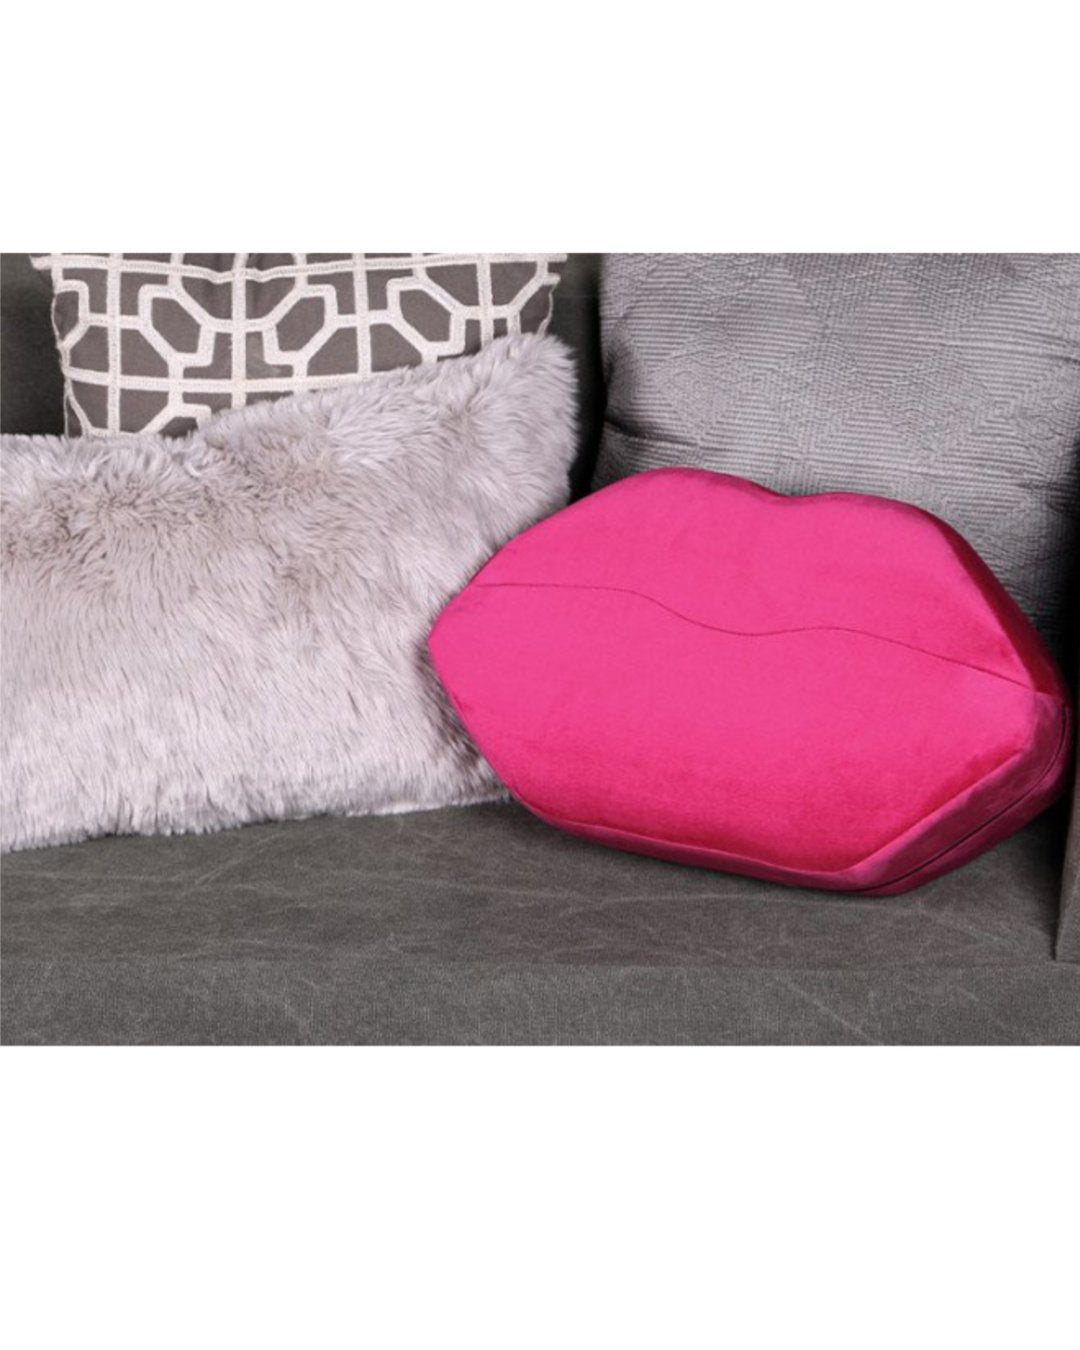 Liberator Kiss Sex Positioning Wedge Pink Pillow on Couch